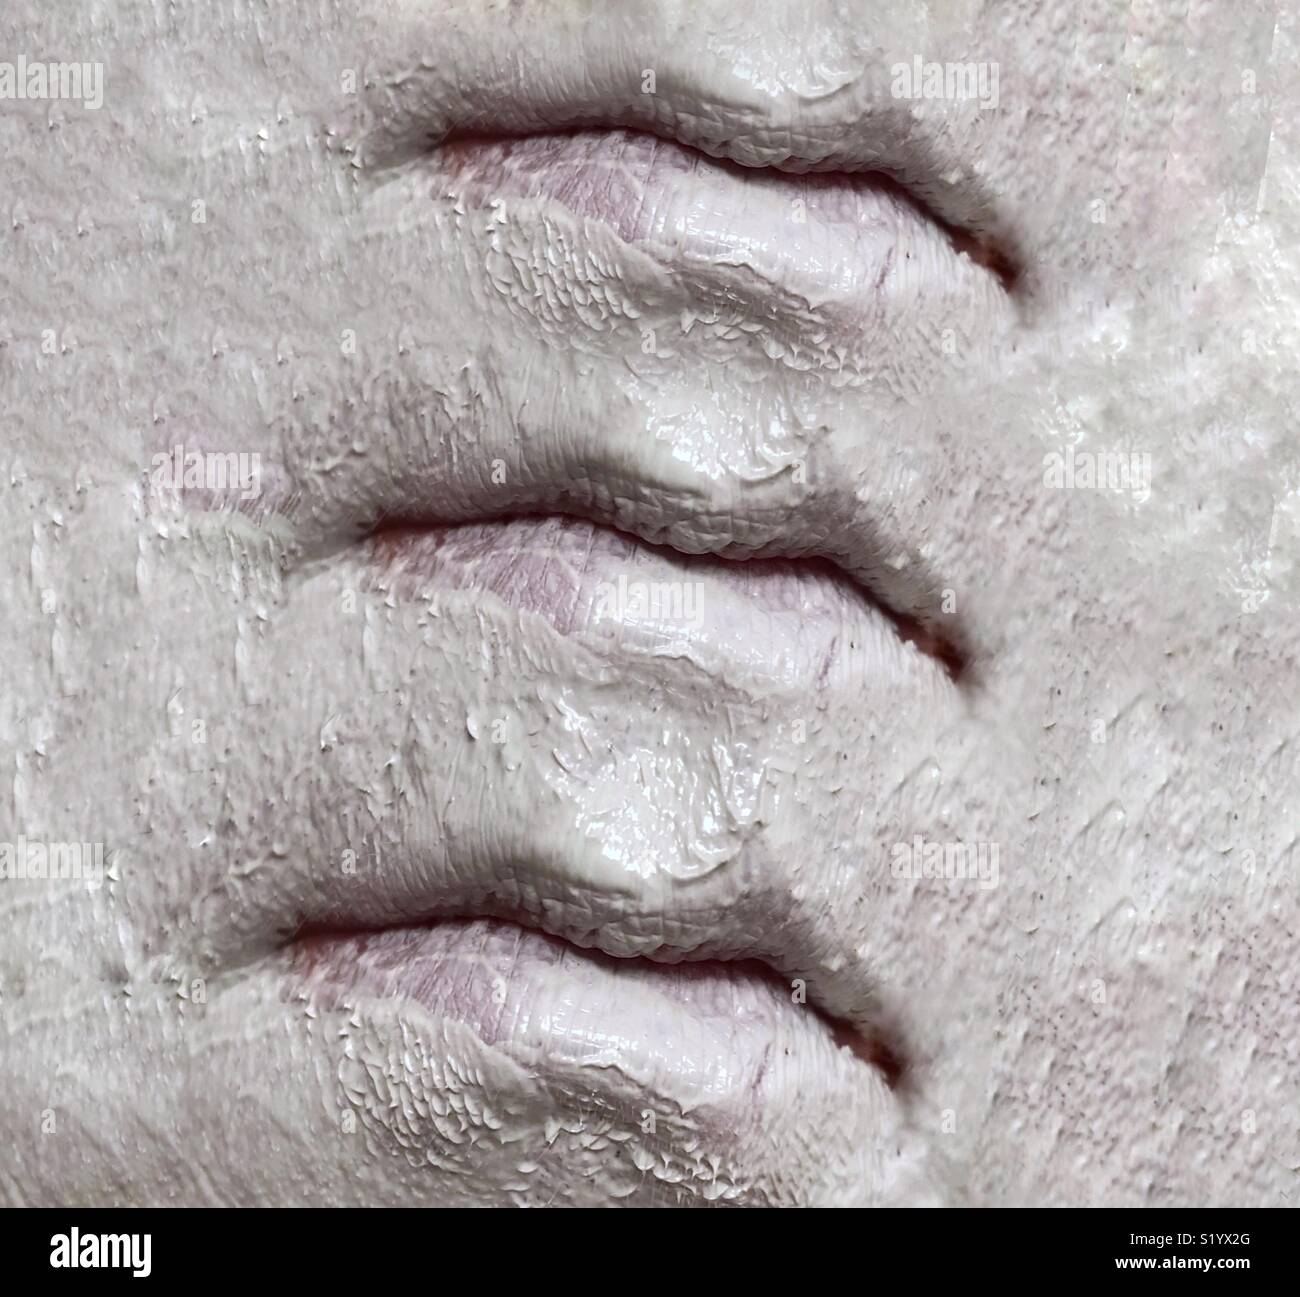 An abstract image of three sets of lips on a face covered in a white clay mud mask - Stock Image